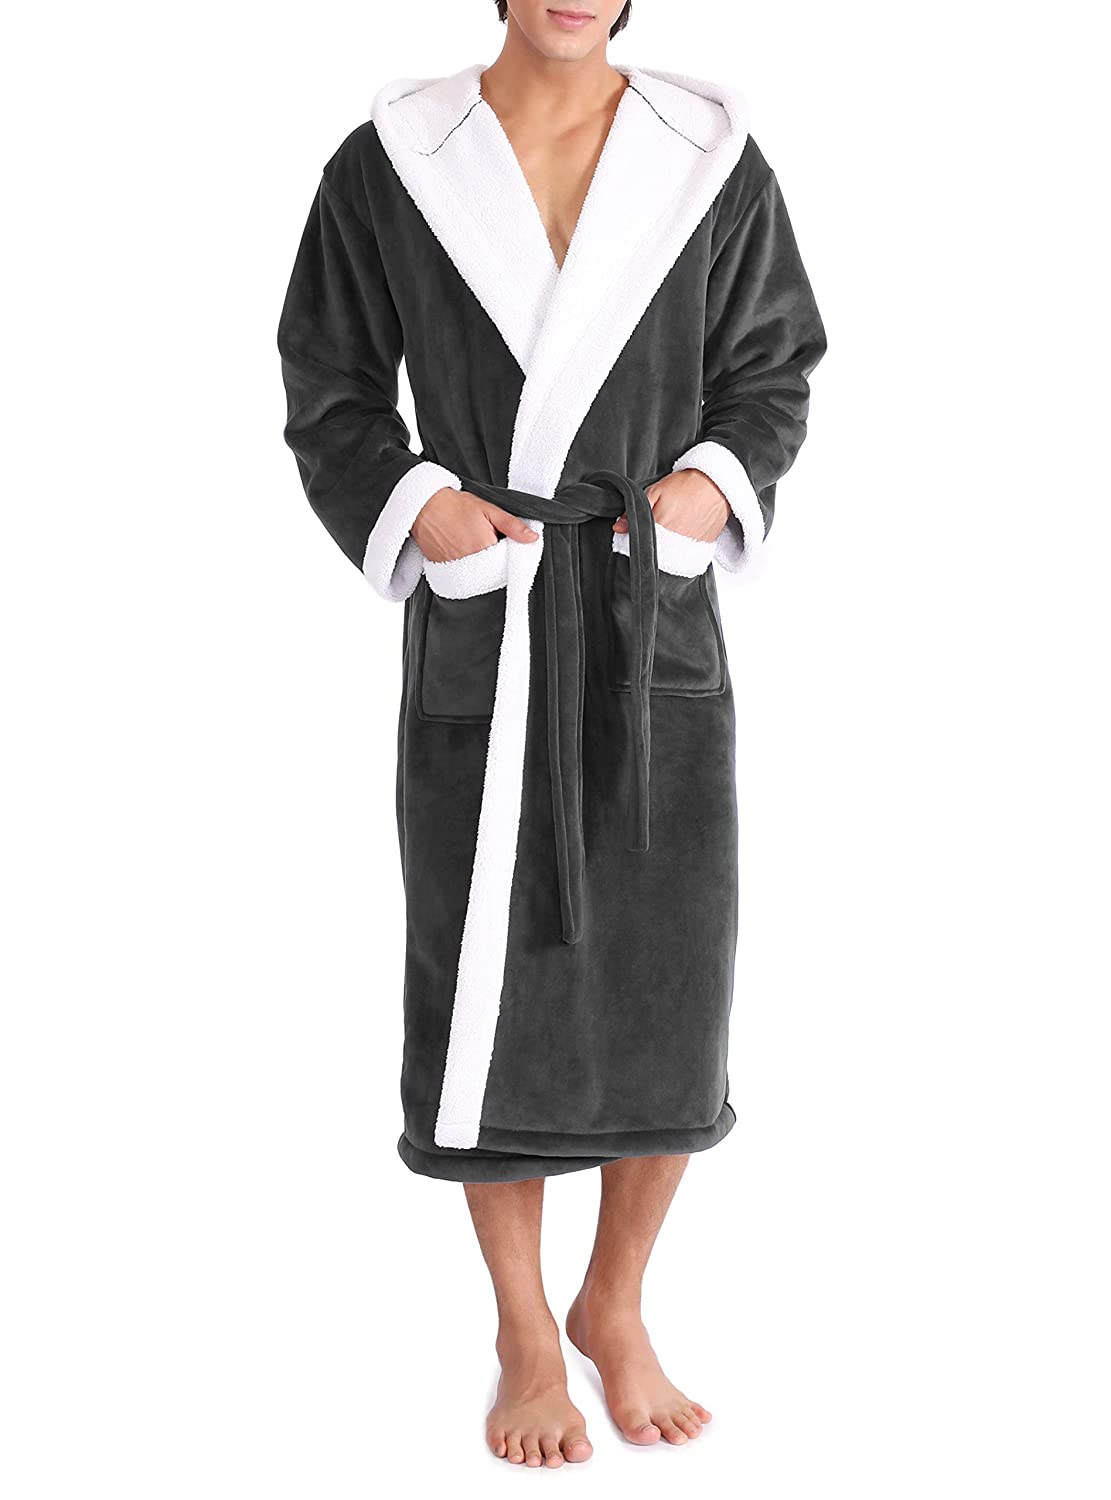 Genuwin Men's Hooded Bathrobe Luxury Velour Berber Fleece Soft Bath Robe Invisible Pockets Belt Warm Nightwear Dressing Gown Men Full Length